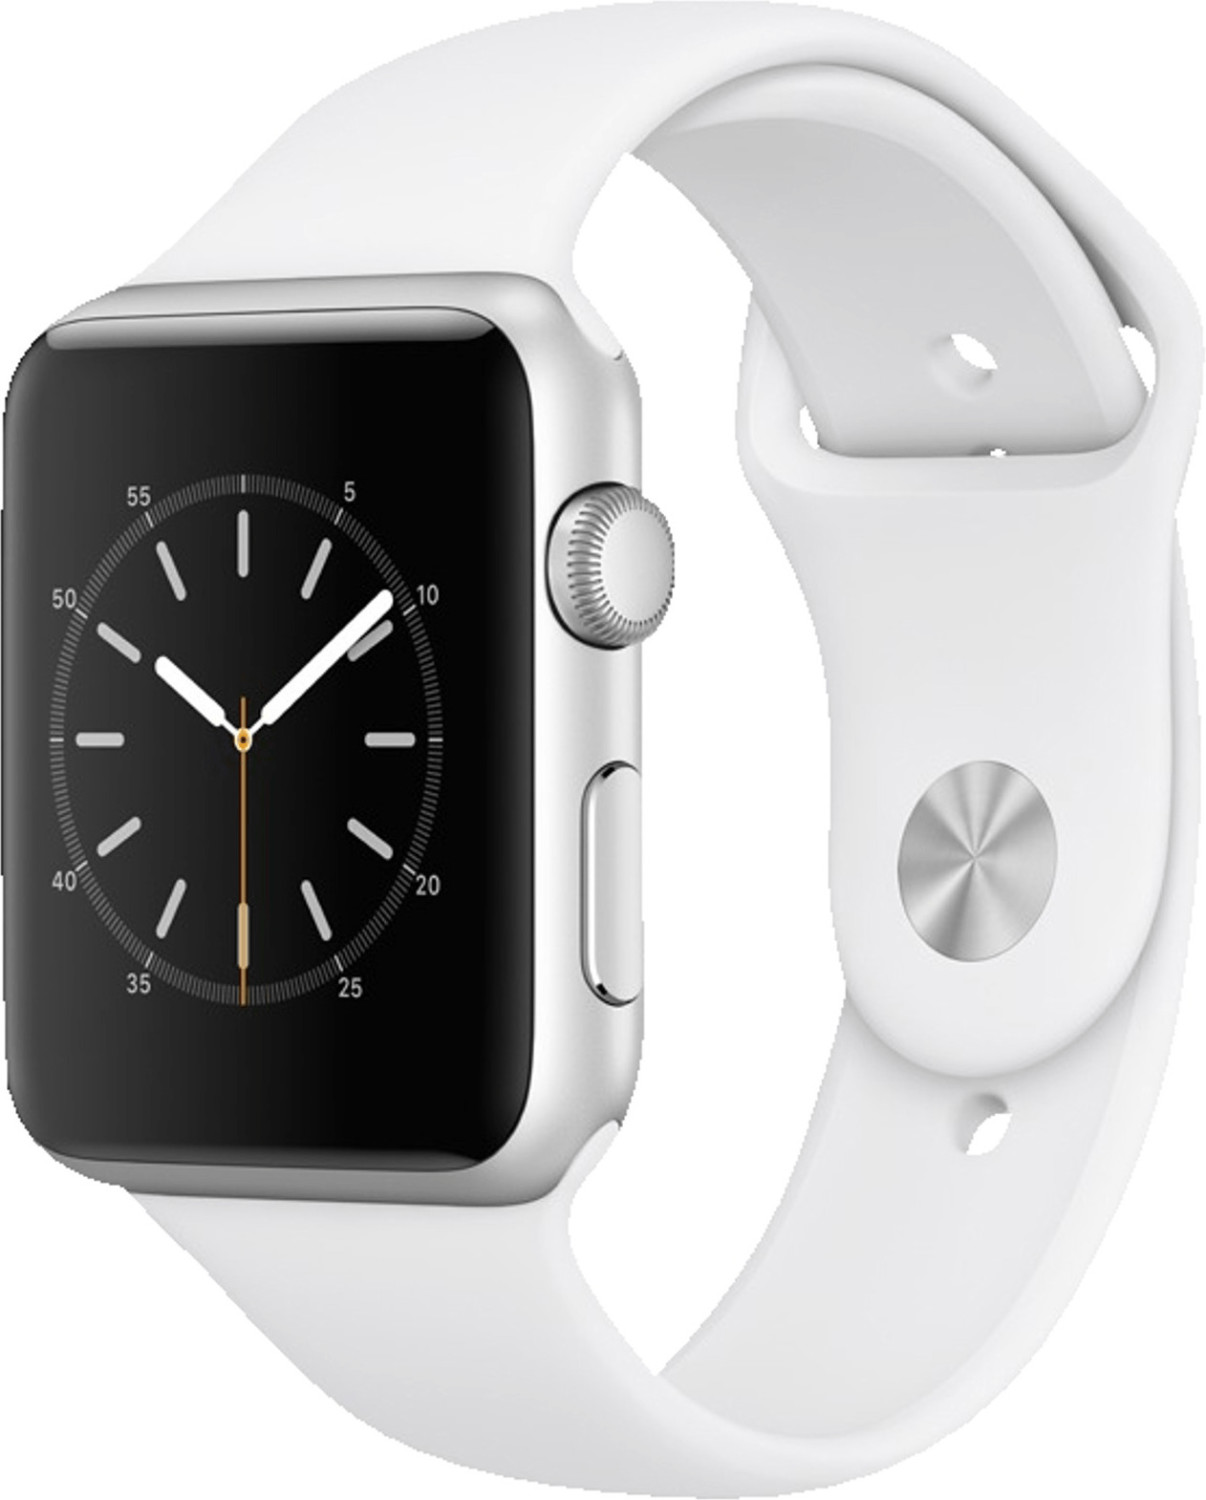 Apple Watch Series 1 42 mm plateado y correa deportiva blanca